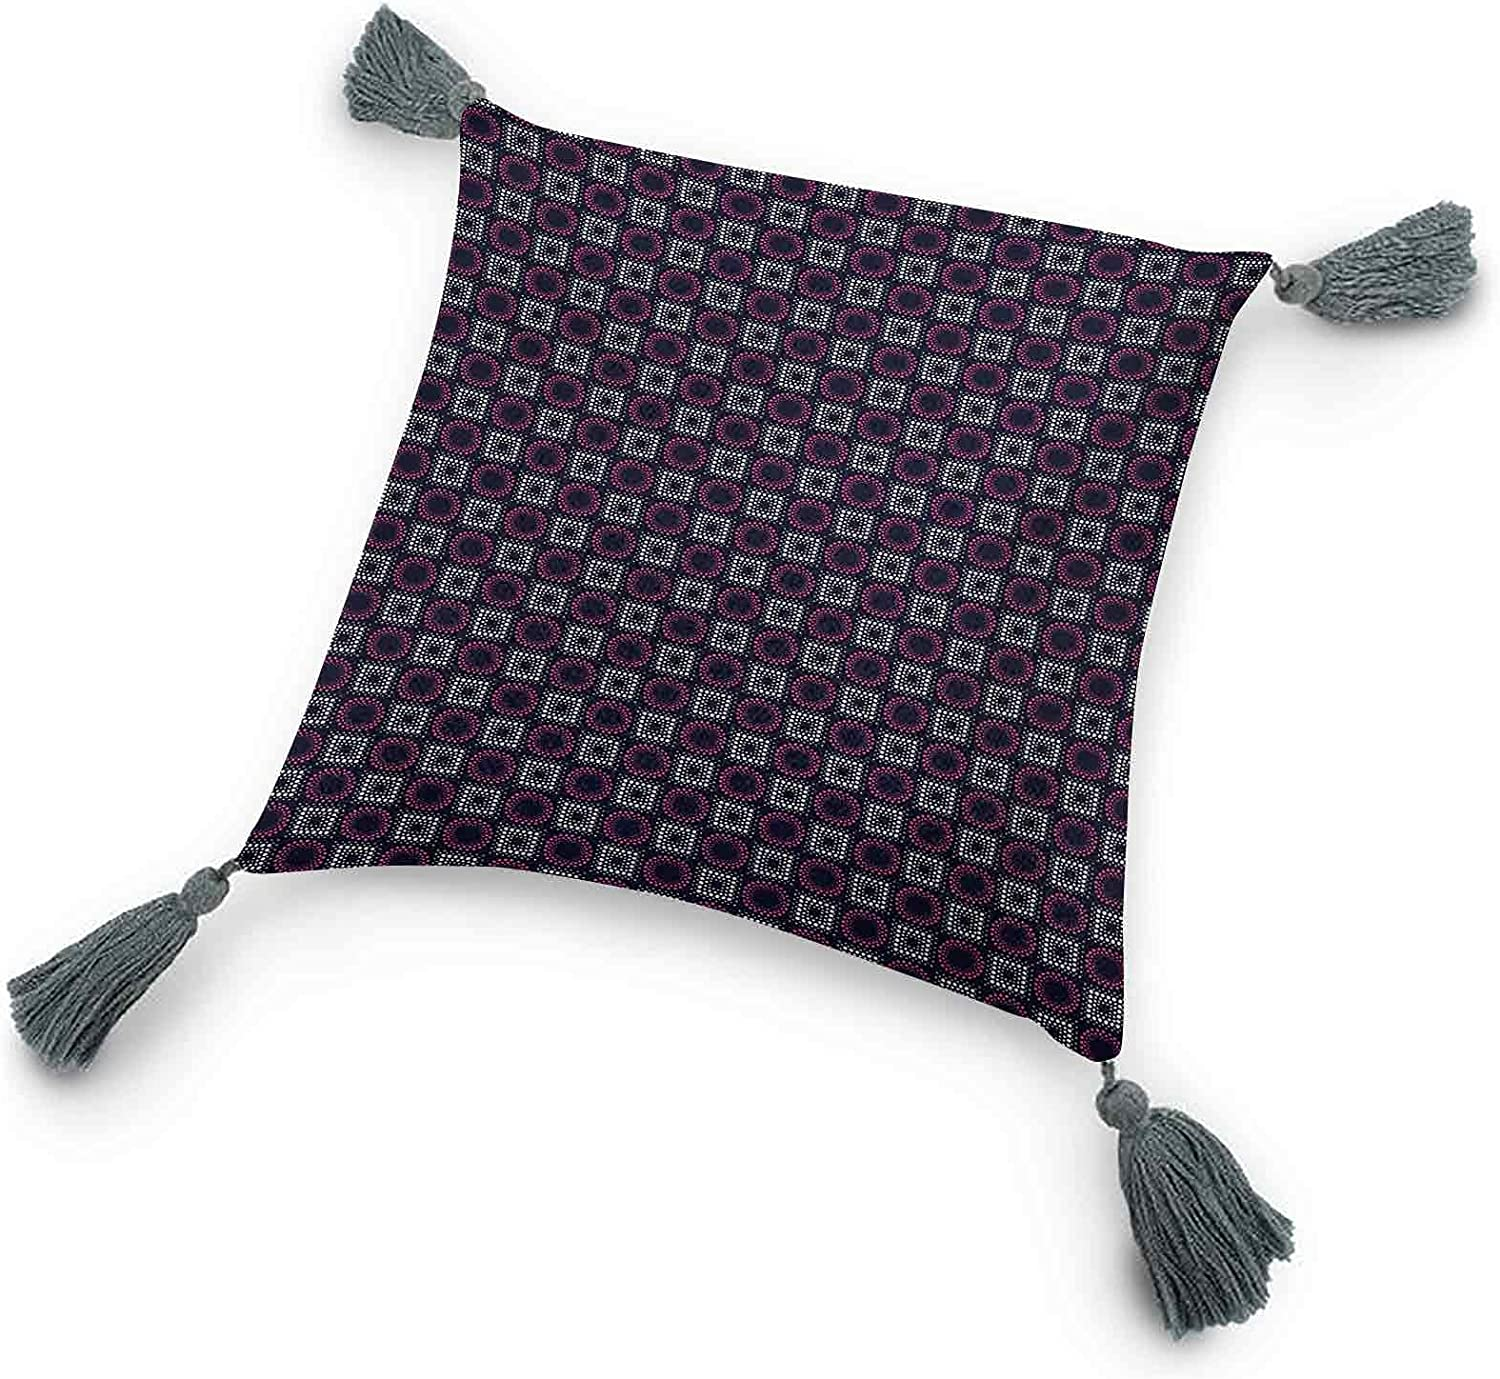 Geometric Tassel Throw Pillow Squares NEW before selling ☆ Big L New York Mall Circles and with